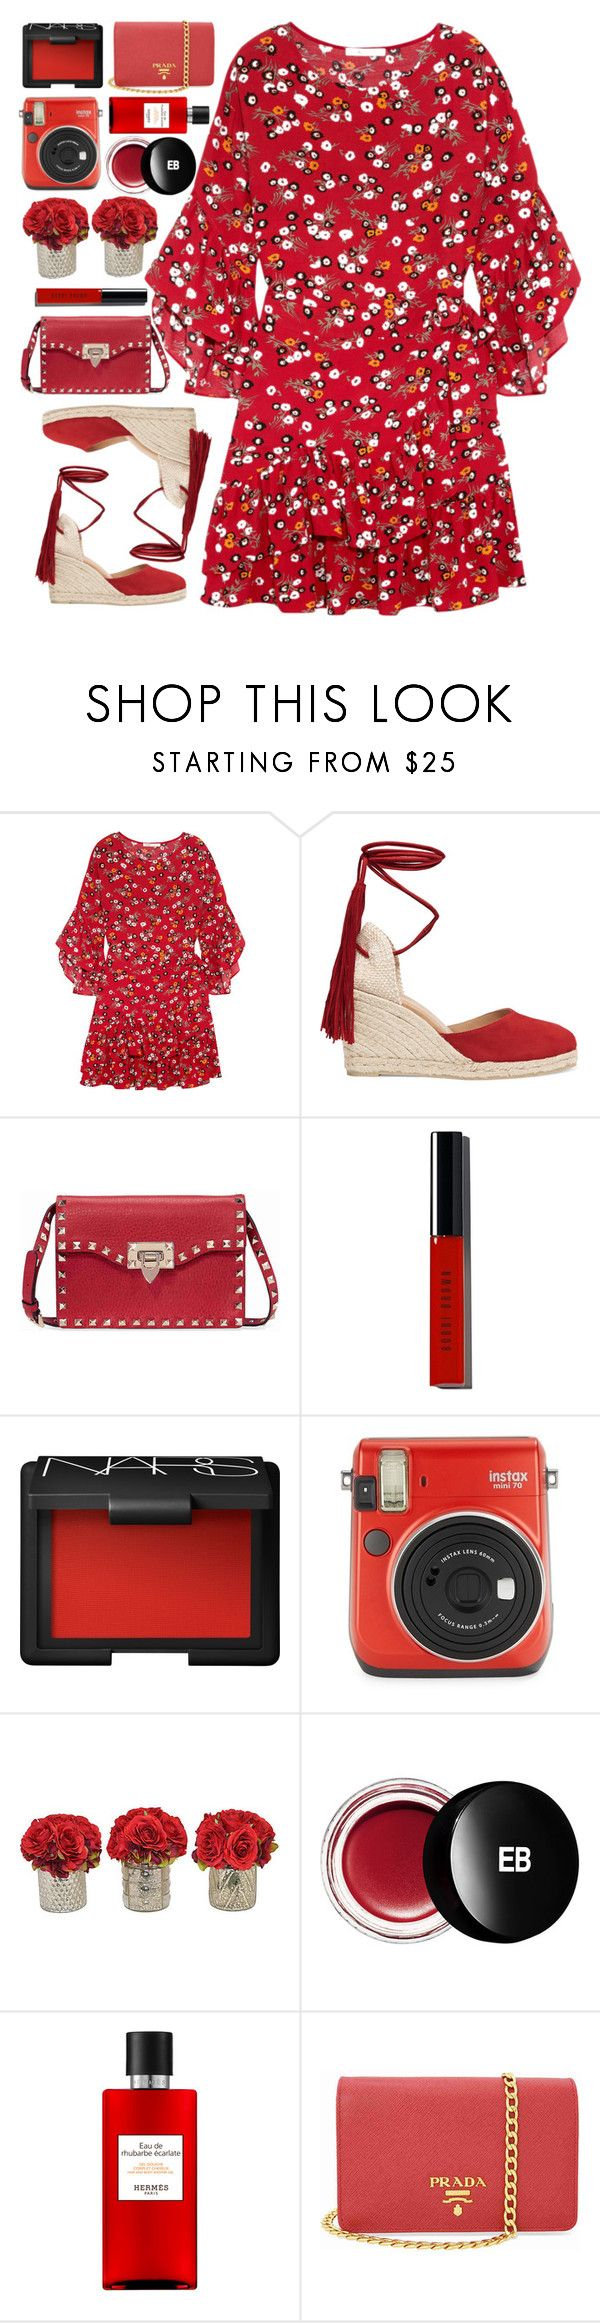 """Lady In Red"" by monmondefou ❤ liked on Polyvore featuring Maje, Castañer, Valentino, Bobbi Brown Cosmetics, NARS Cosmetics, Fuji, The French Bee, Edward Bess, Hermès and Prada"